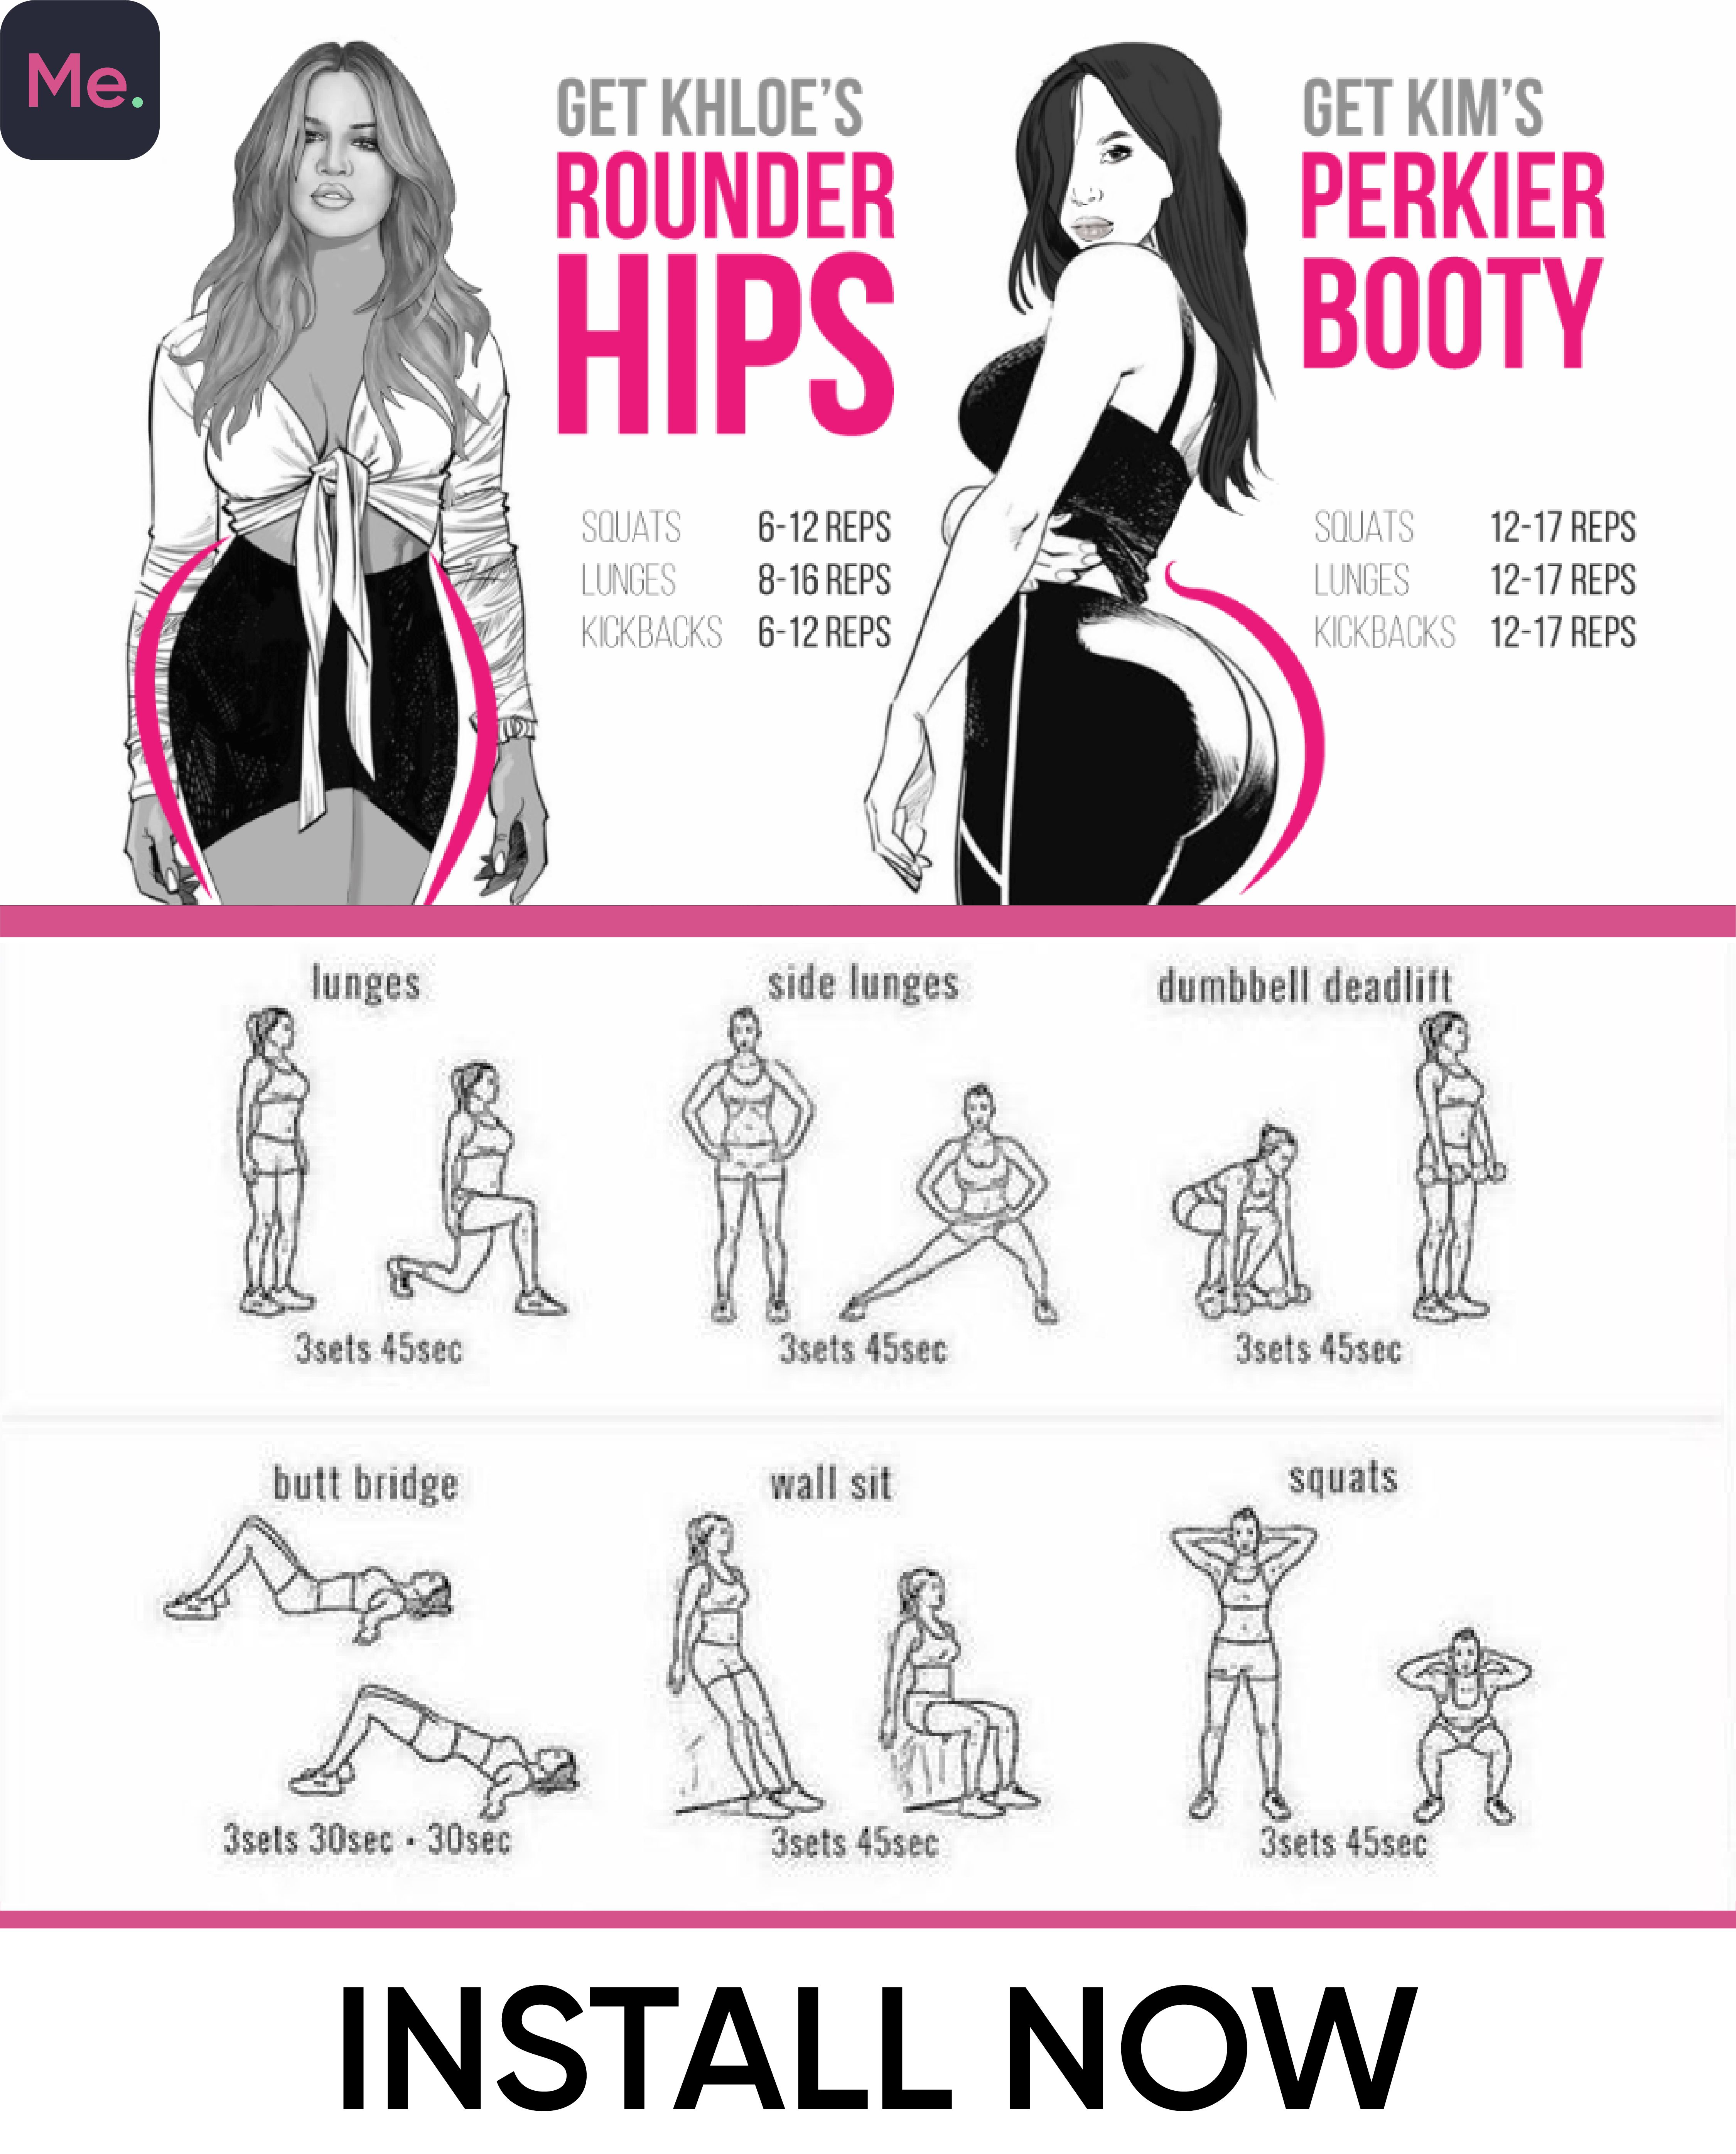 How to Get Rounder Hips and Perkier Butt